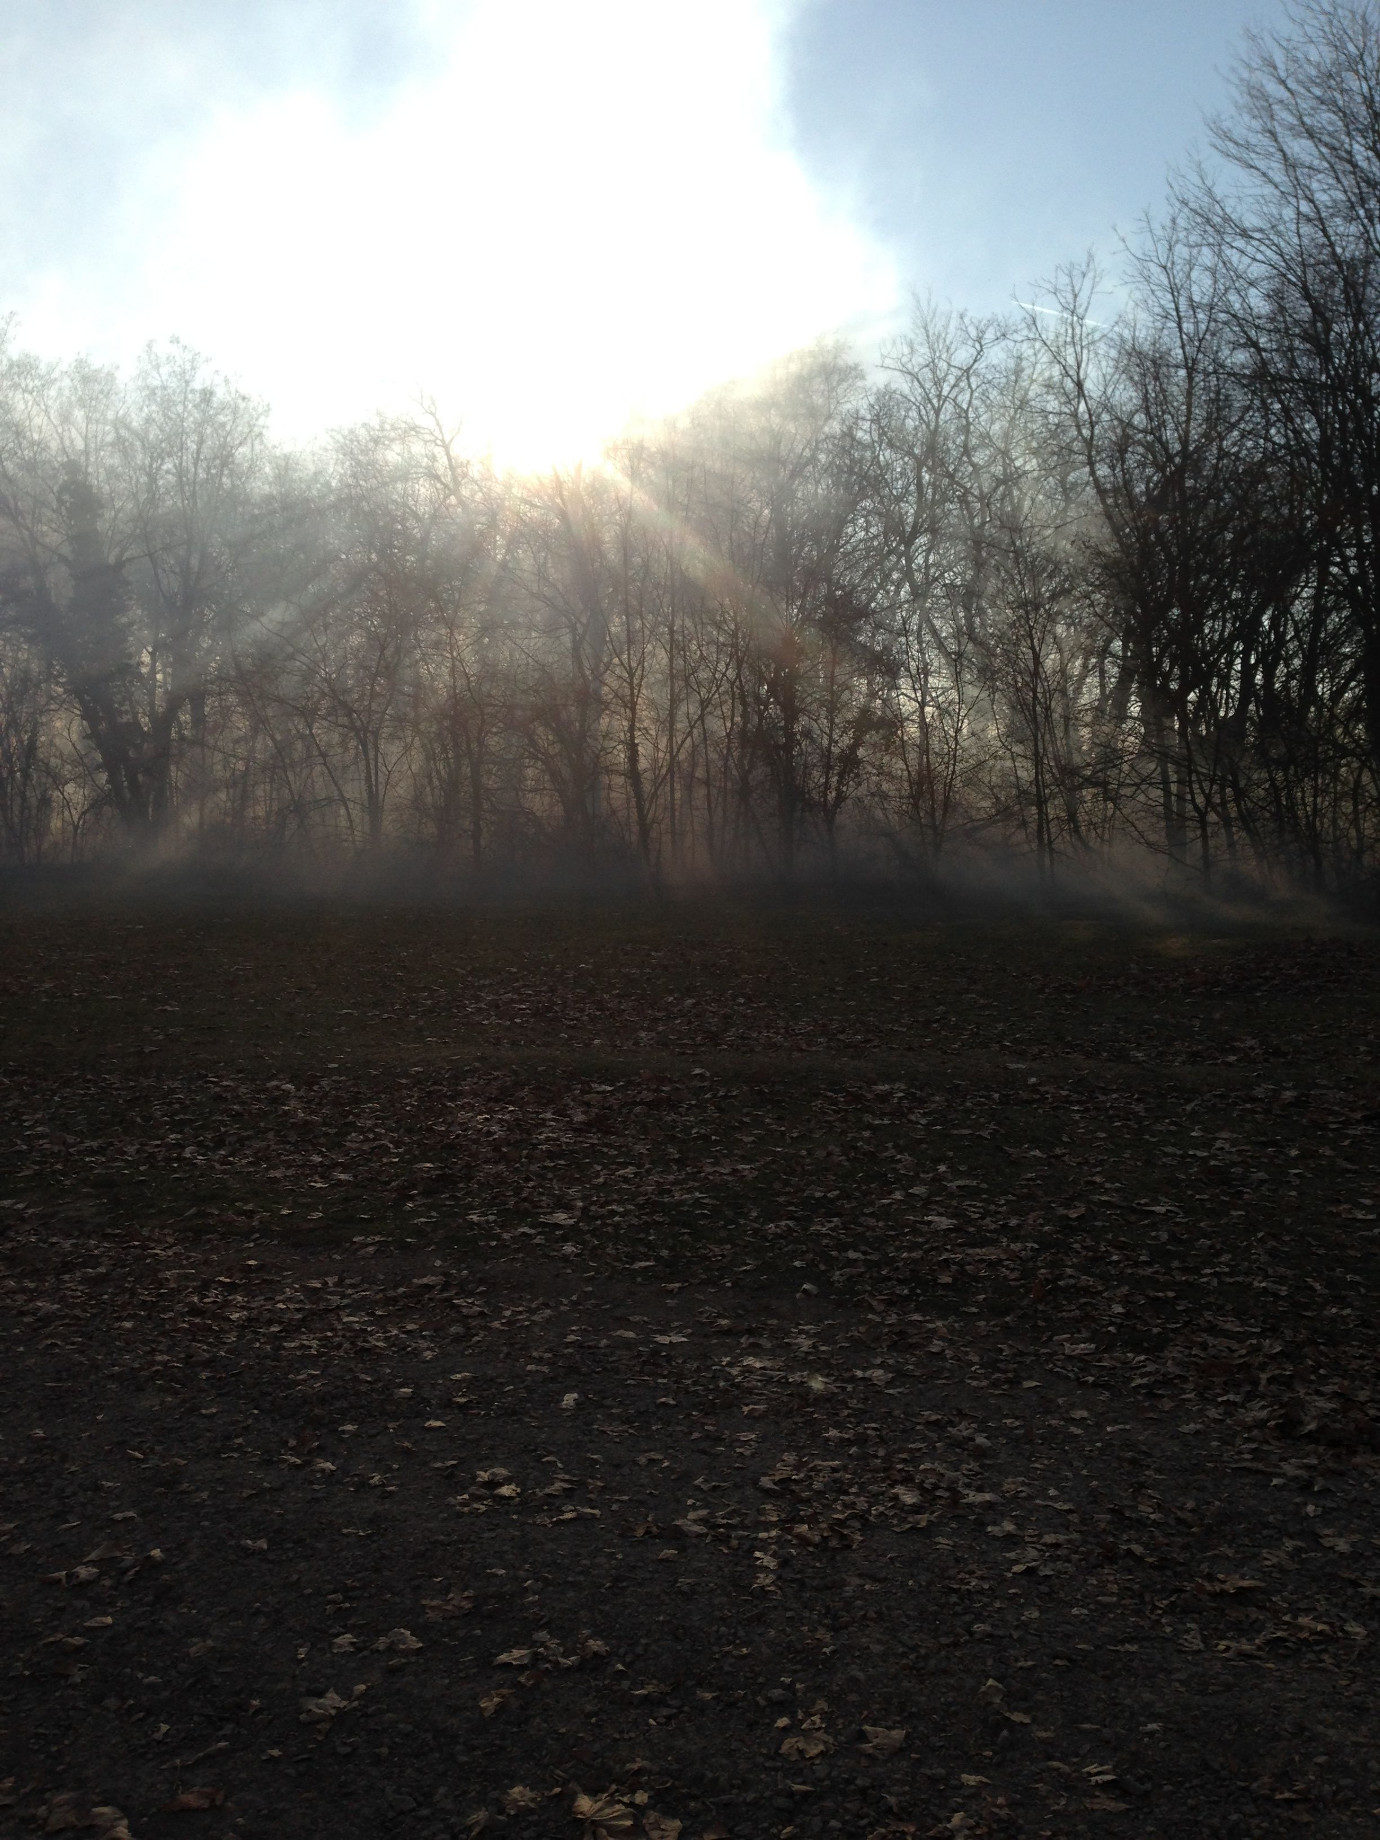 We pumped in mist to fill the woods for a party scene.